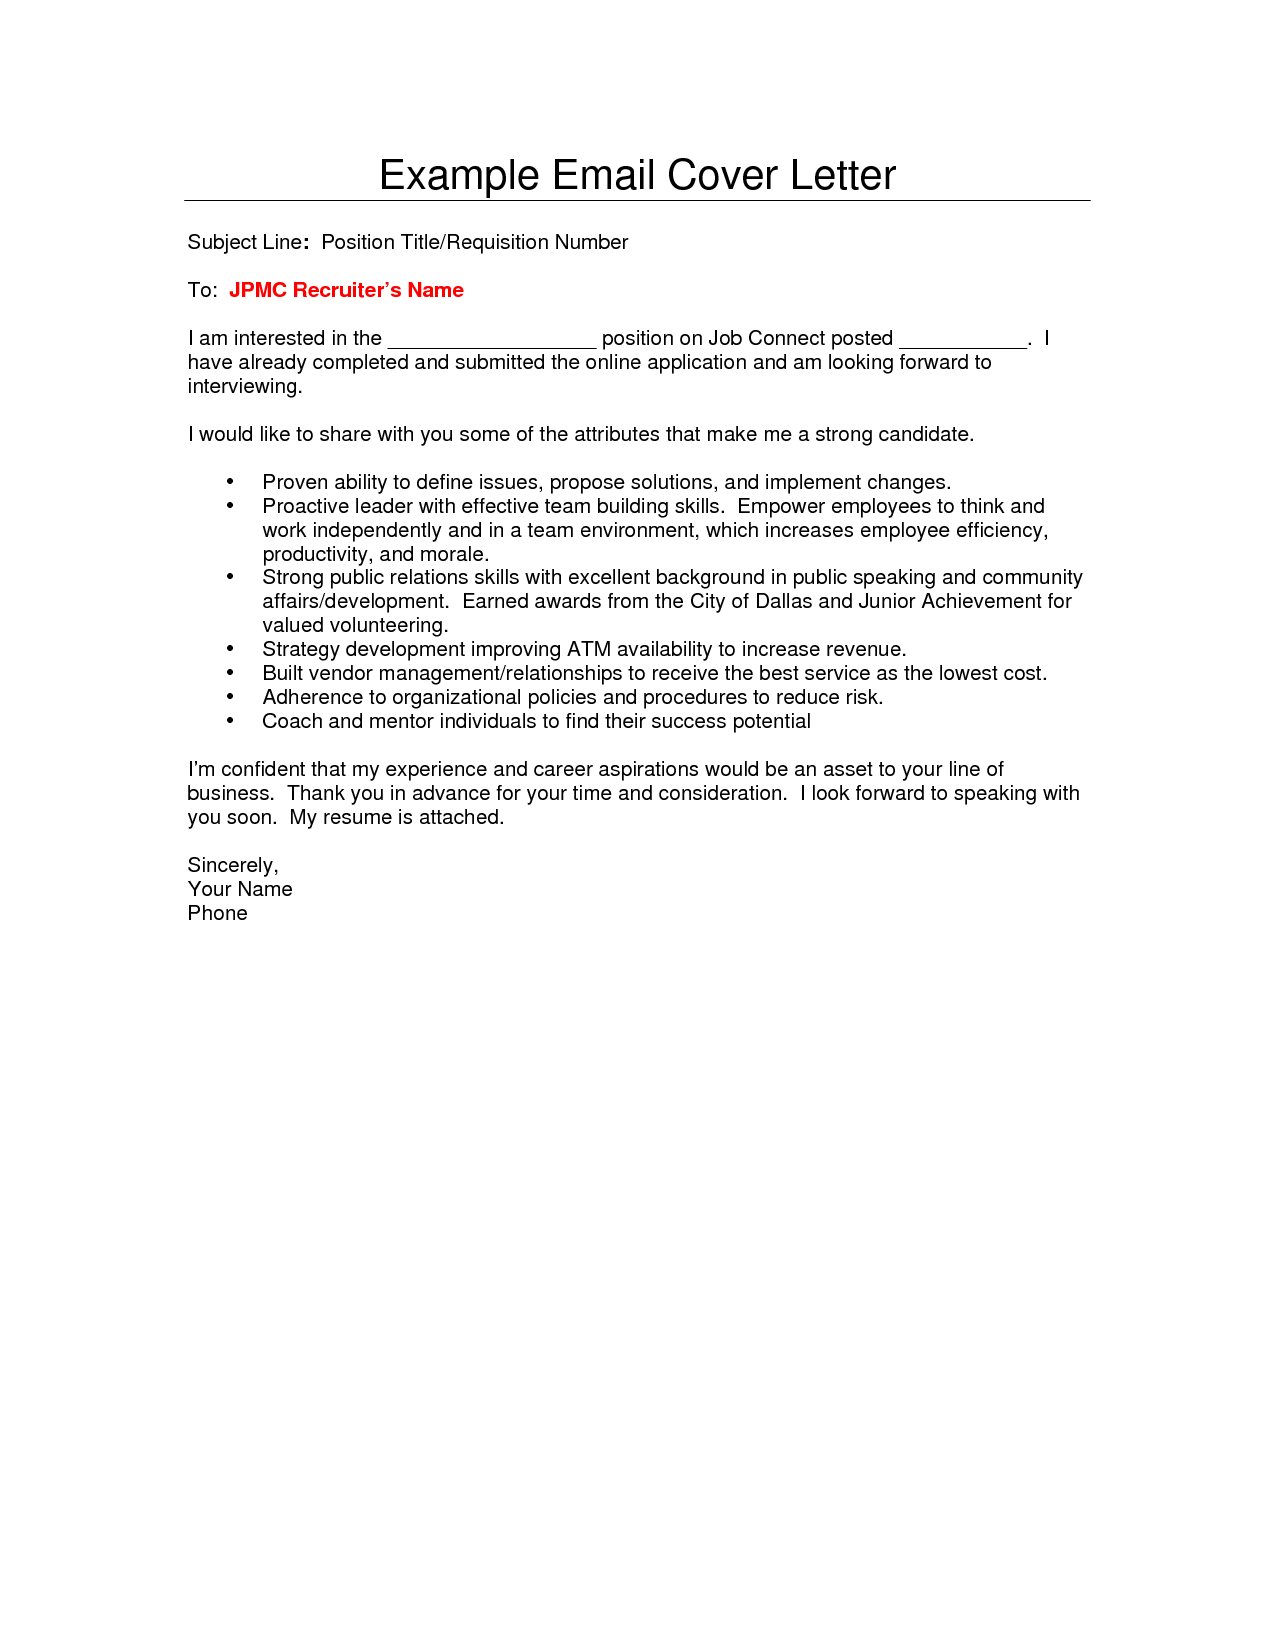 Cover Letter Emails Examples Fresh Email Cover Letter Sample